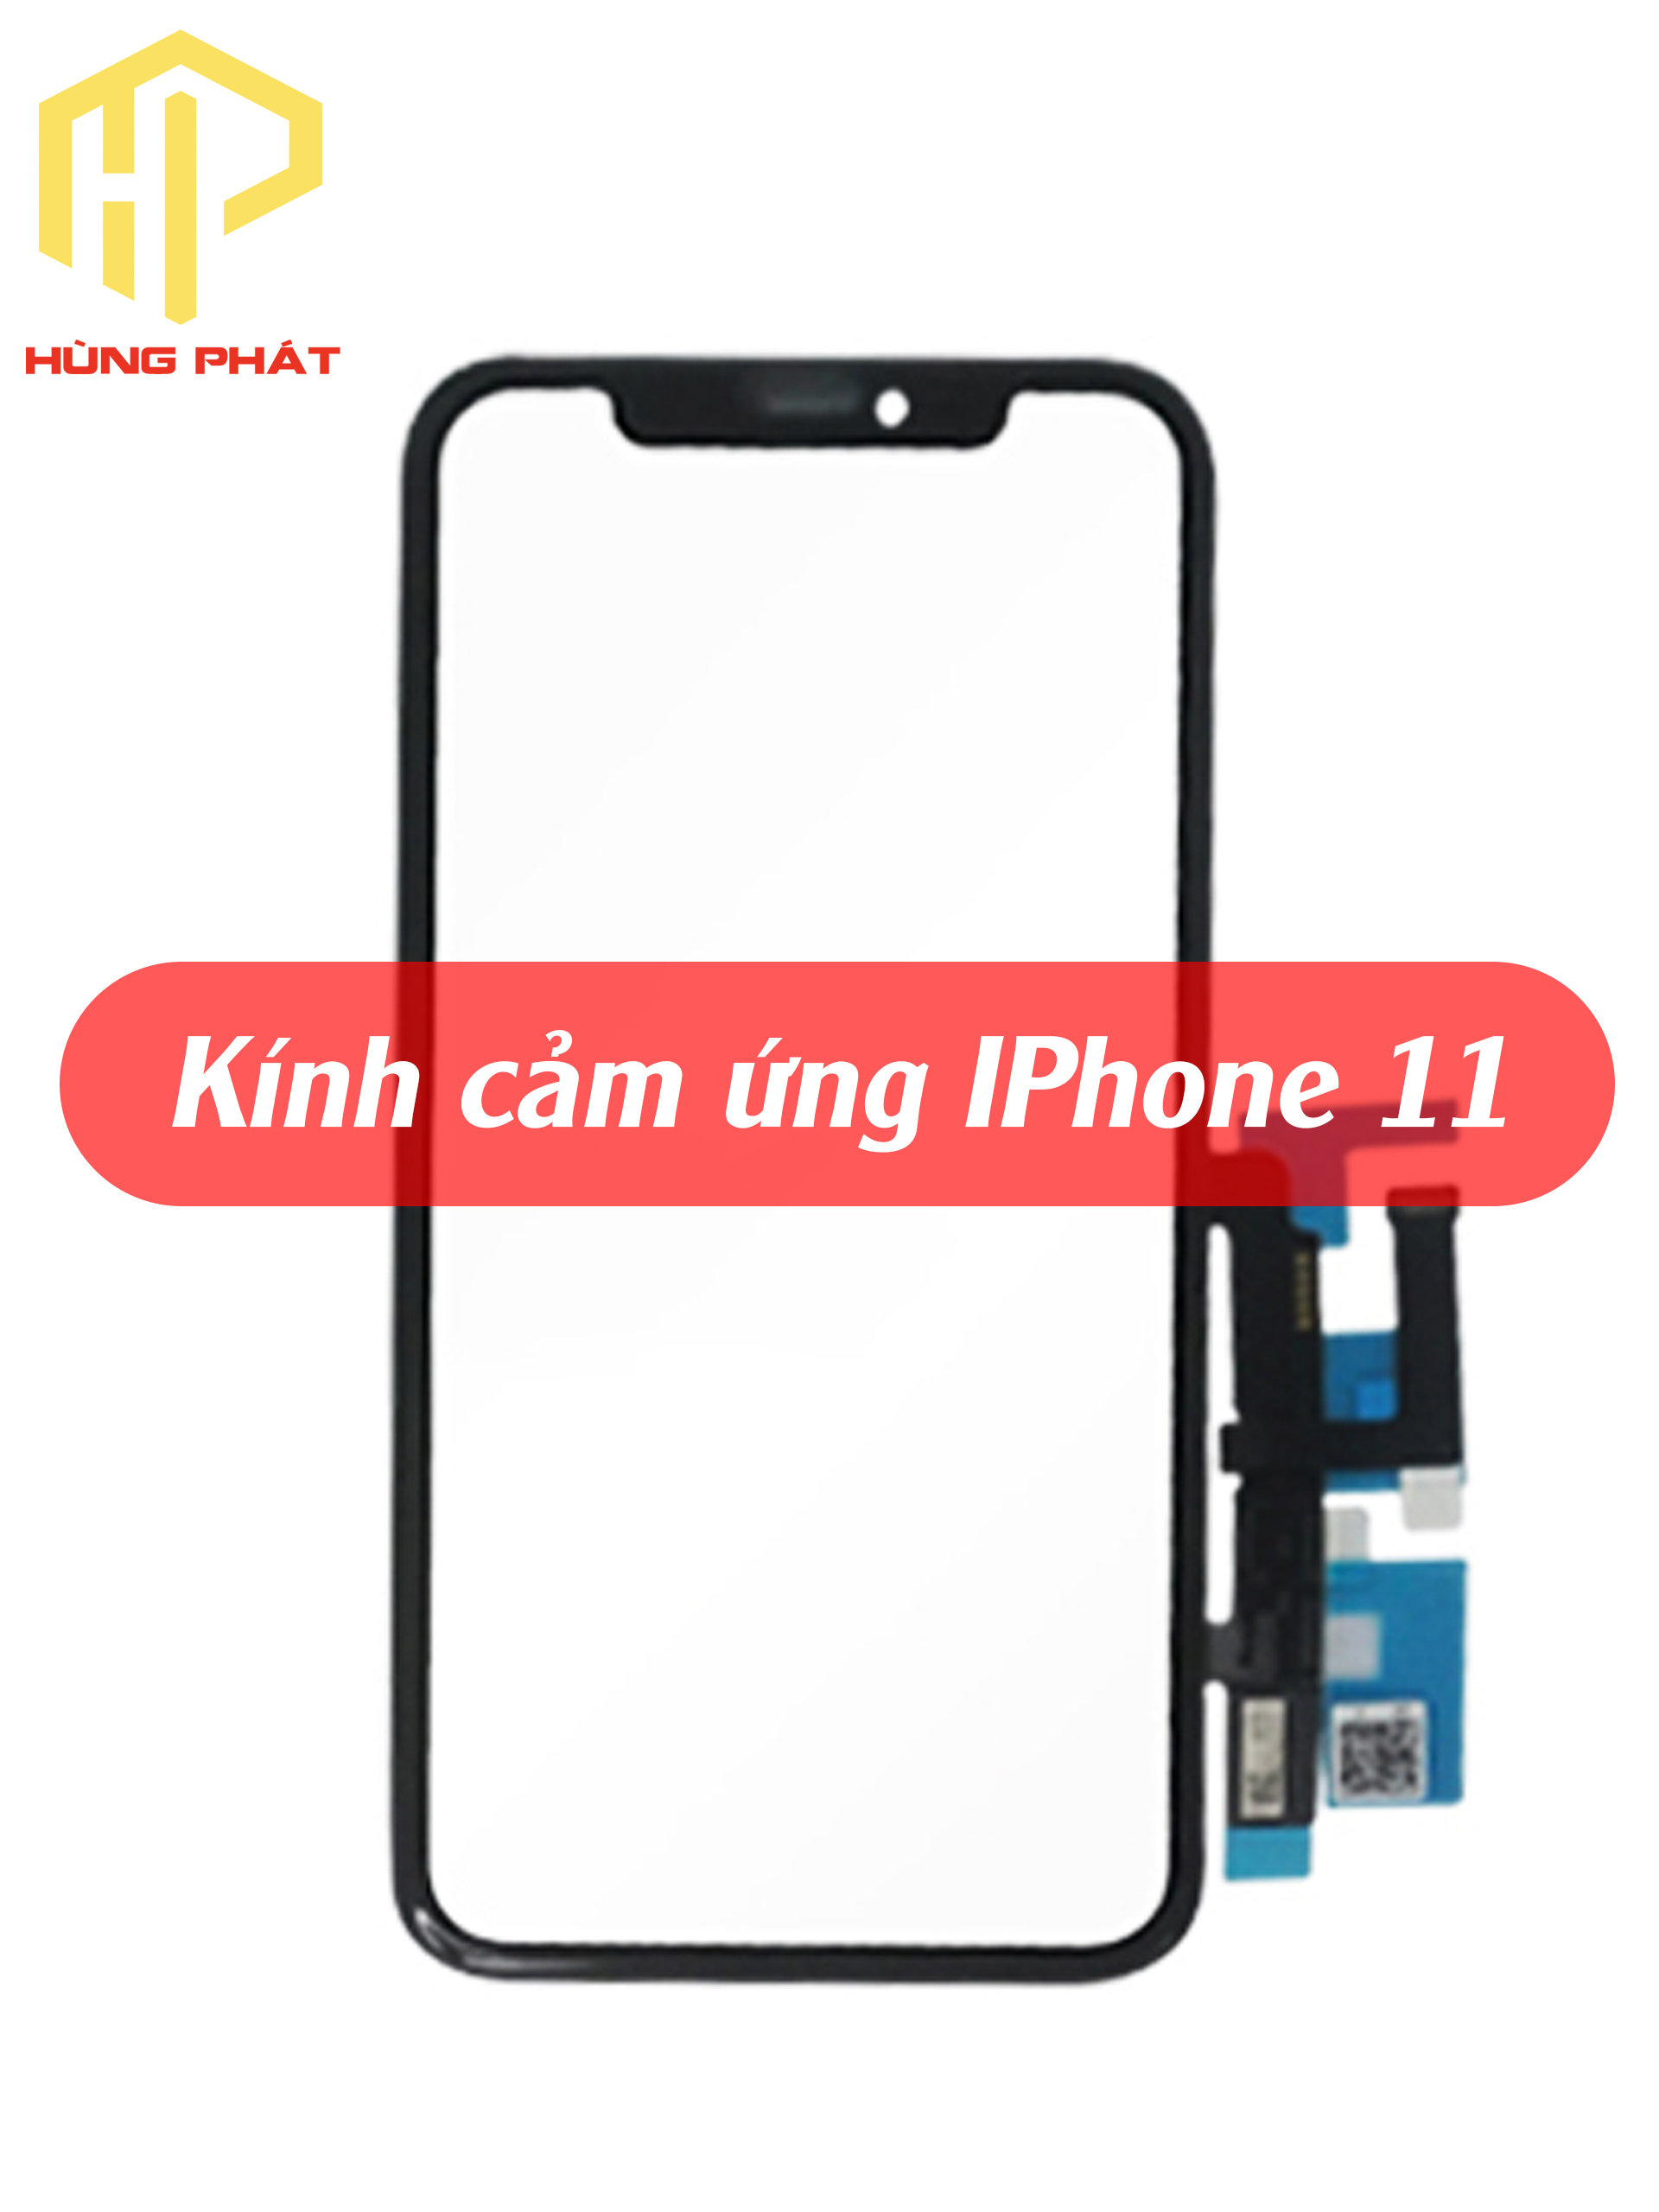 ep-kinh-cam-ung-iphone-11